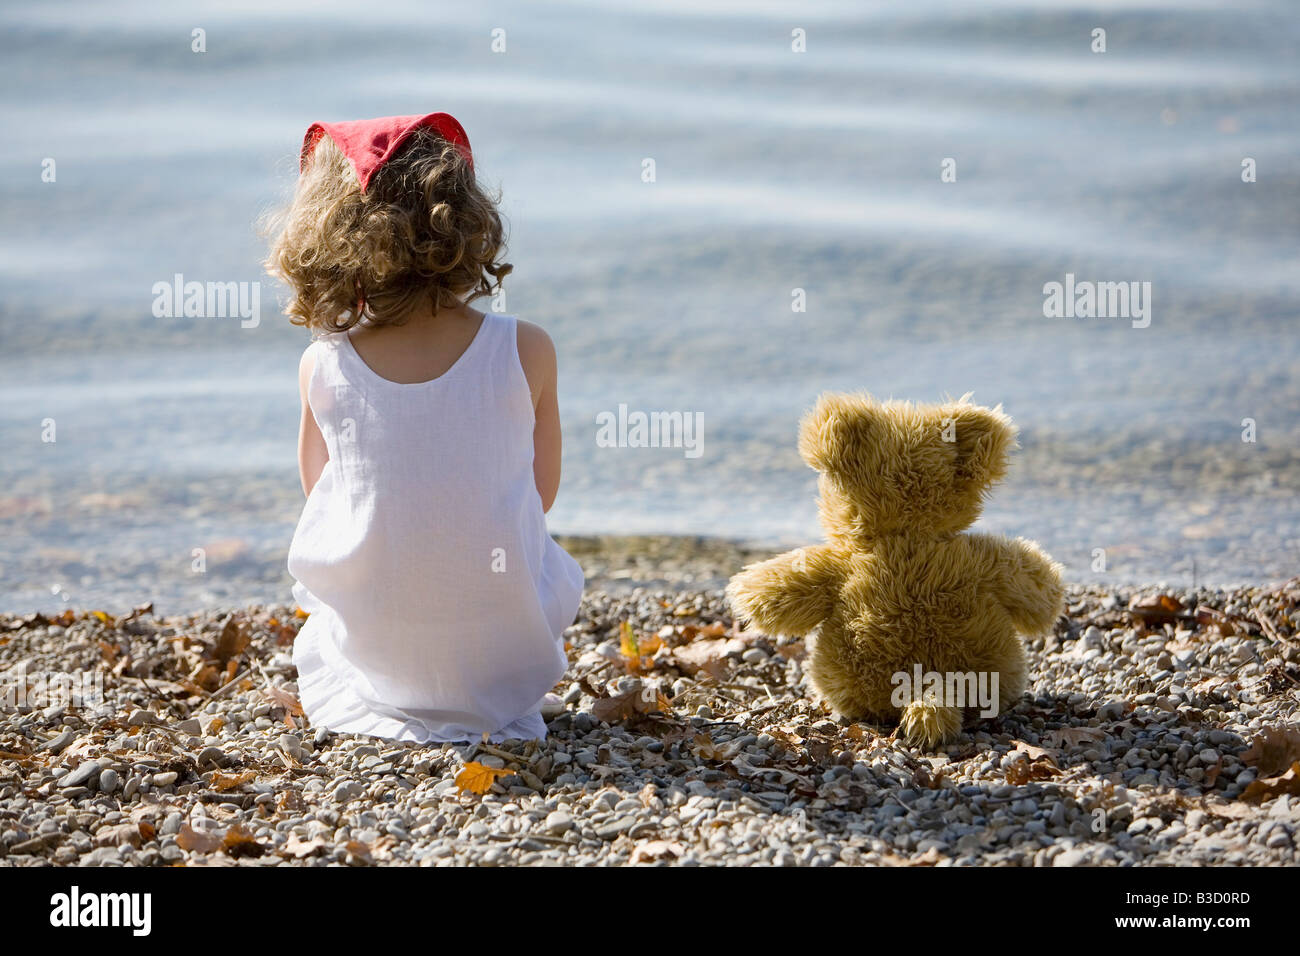 Germany, Bavaria, Ammersee, little girl (3-4) sitting on beach, rear view - Stock Image